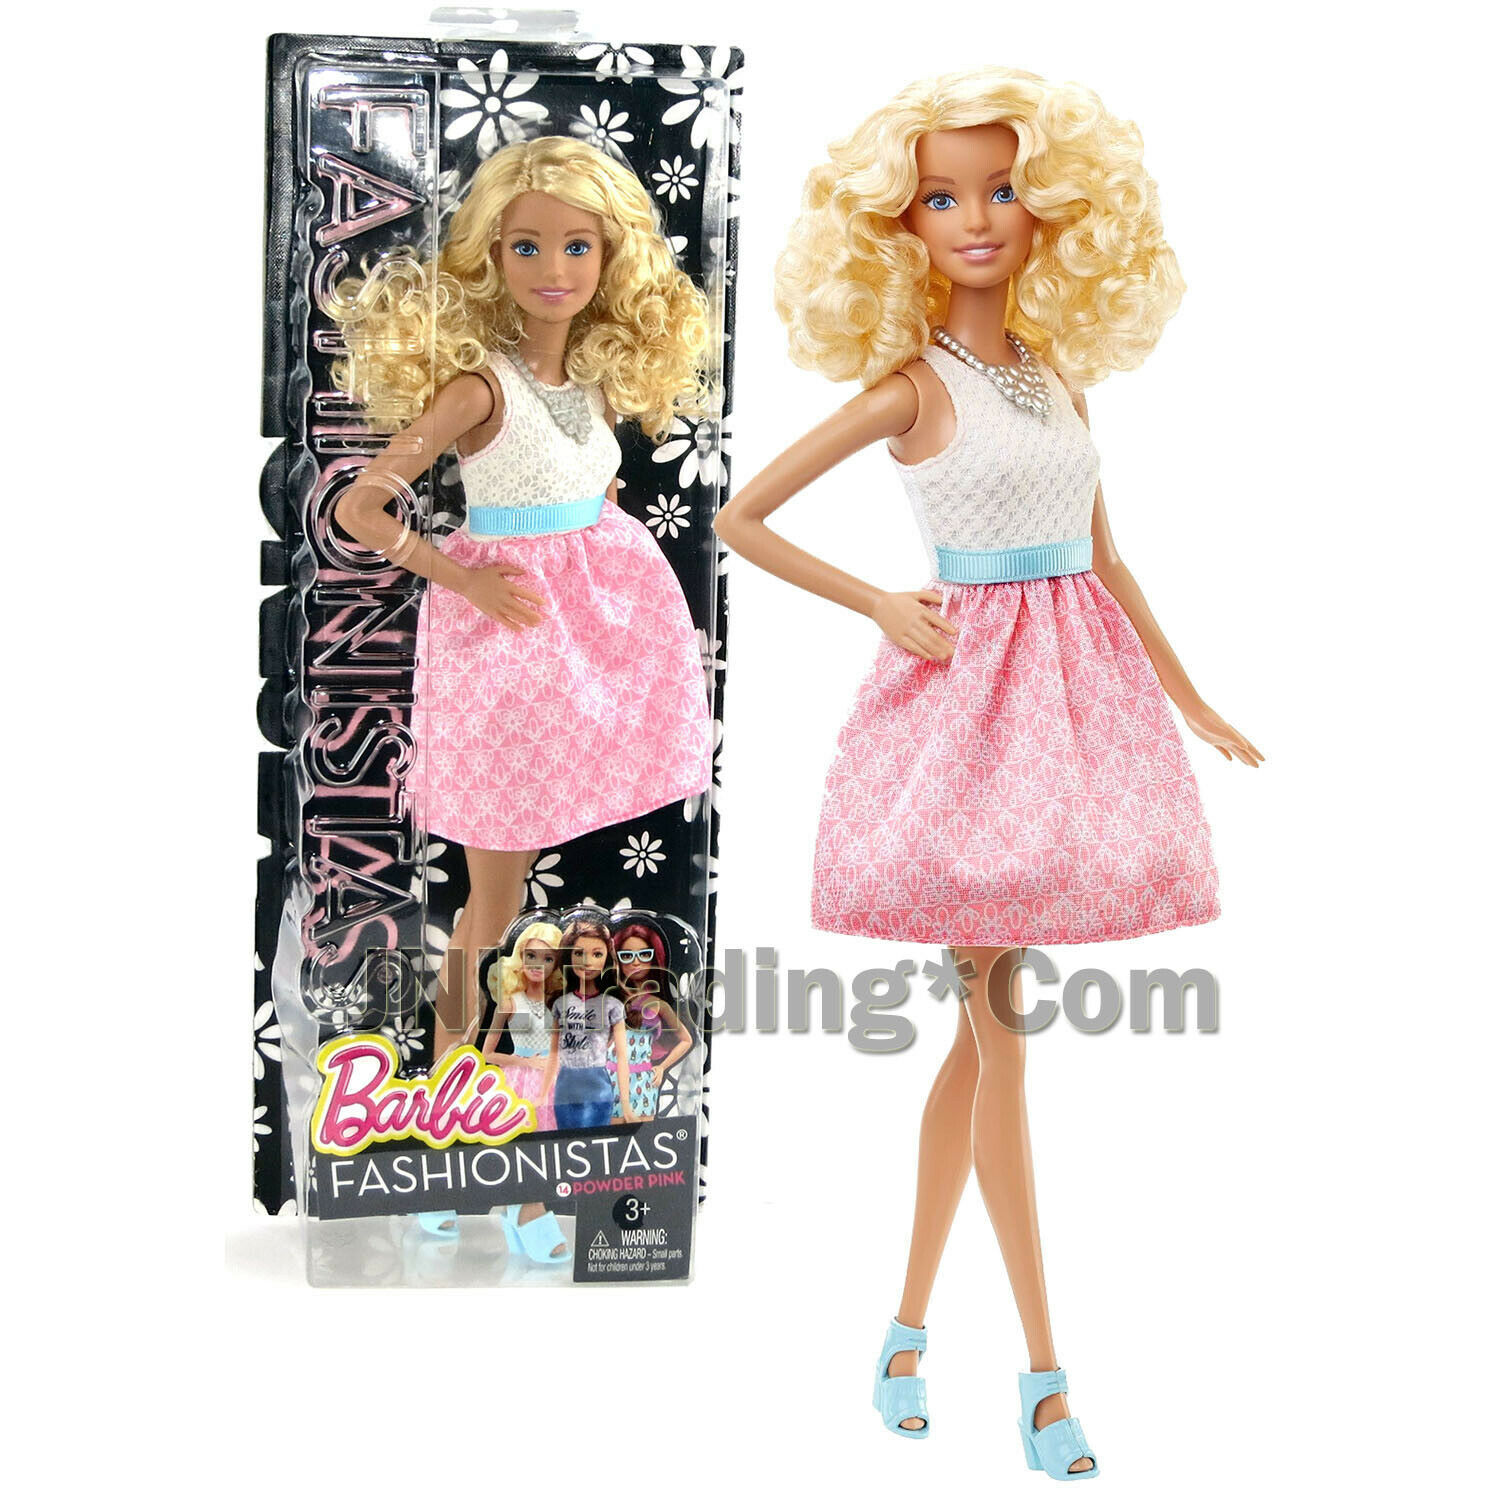 "Primary image for Mattel 2015 Barbie Fashionistas 12"" Doll (DGY57) in Baby Doll Dress pink Skirt"